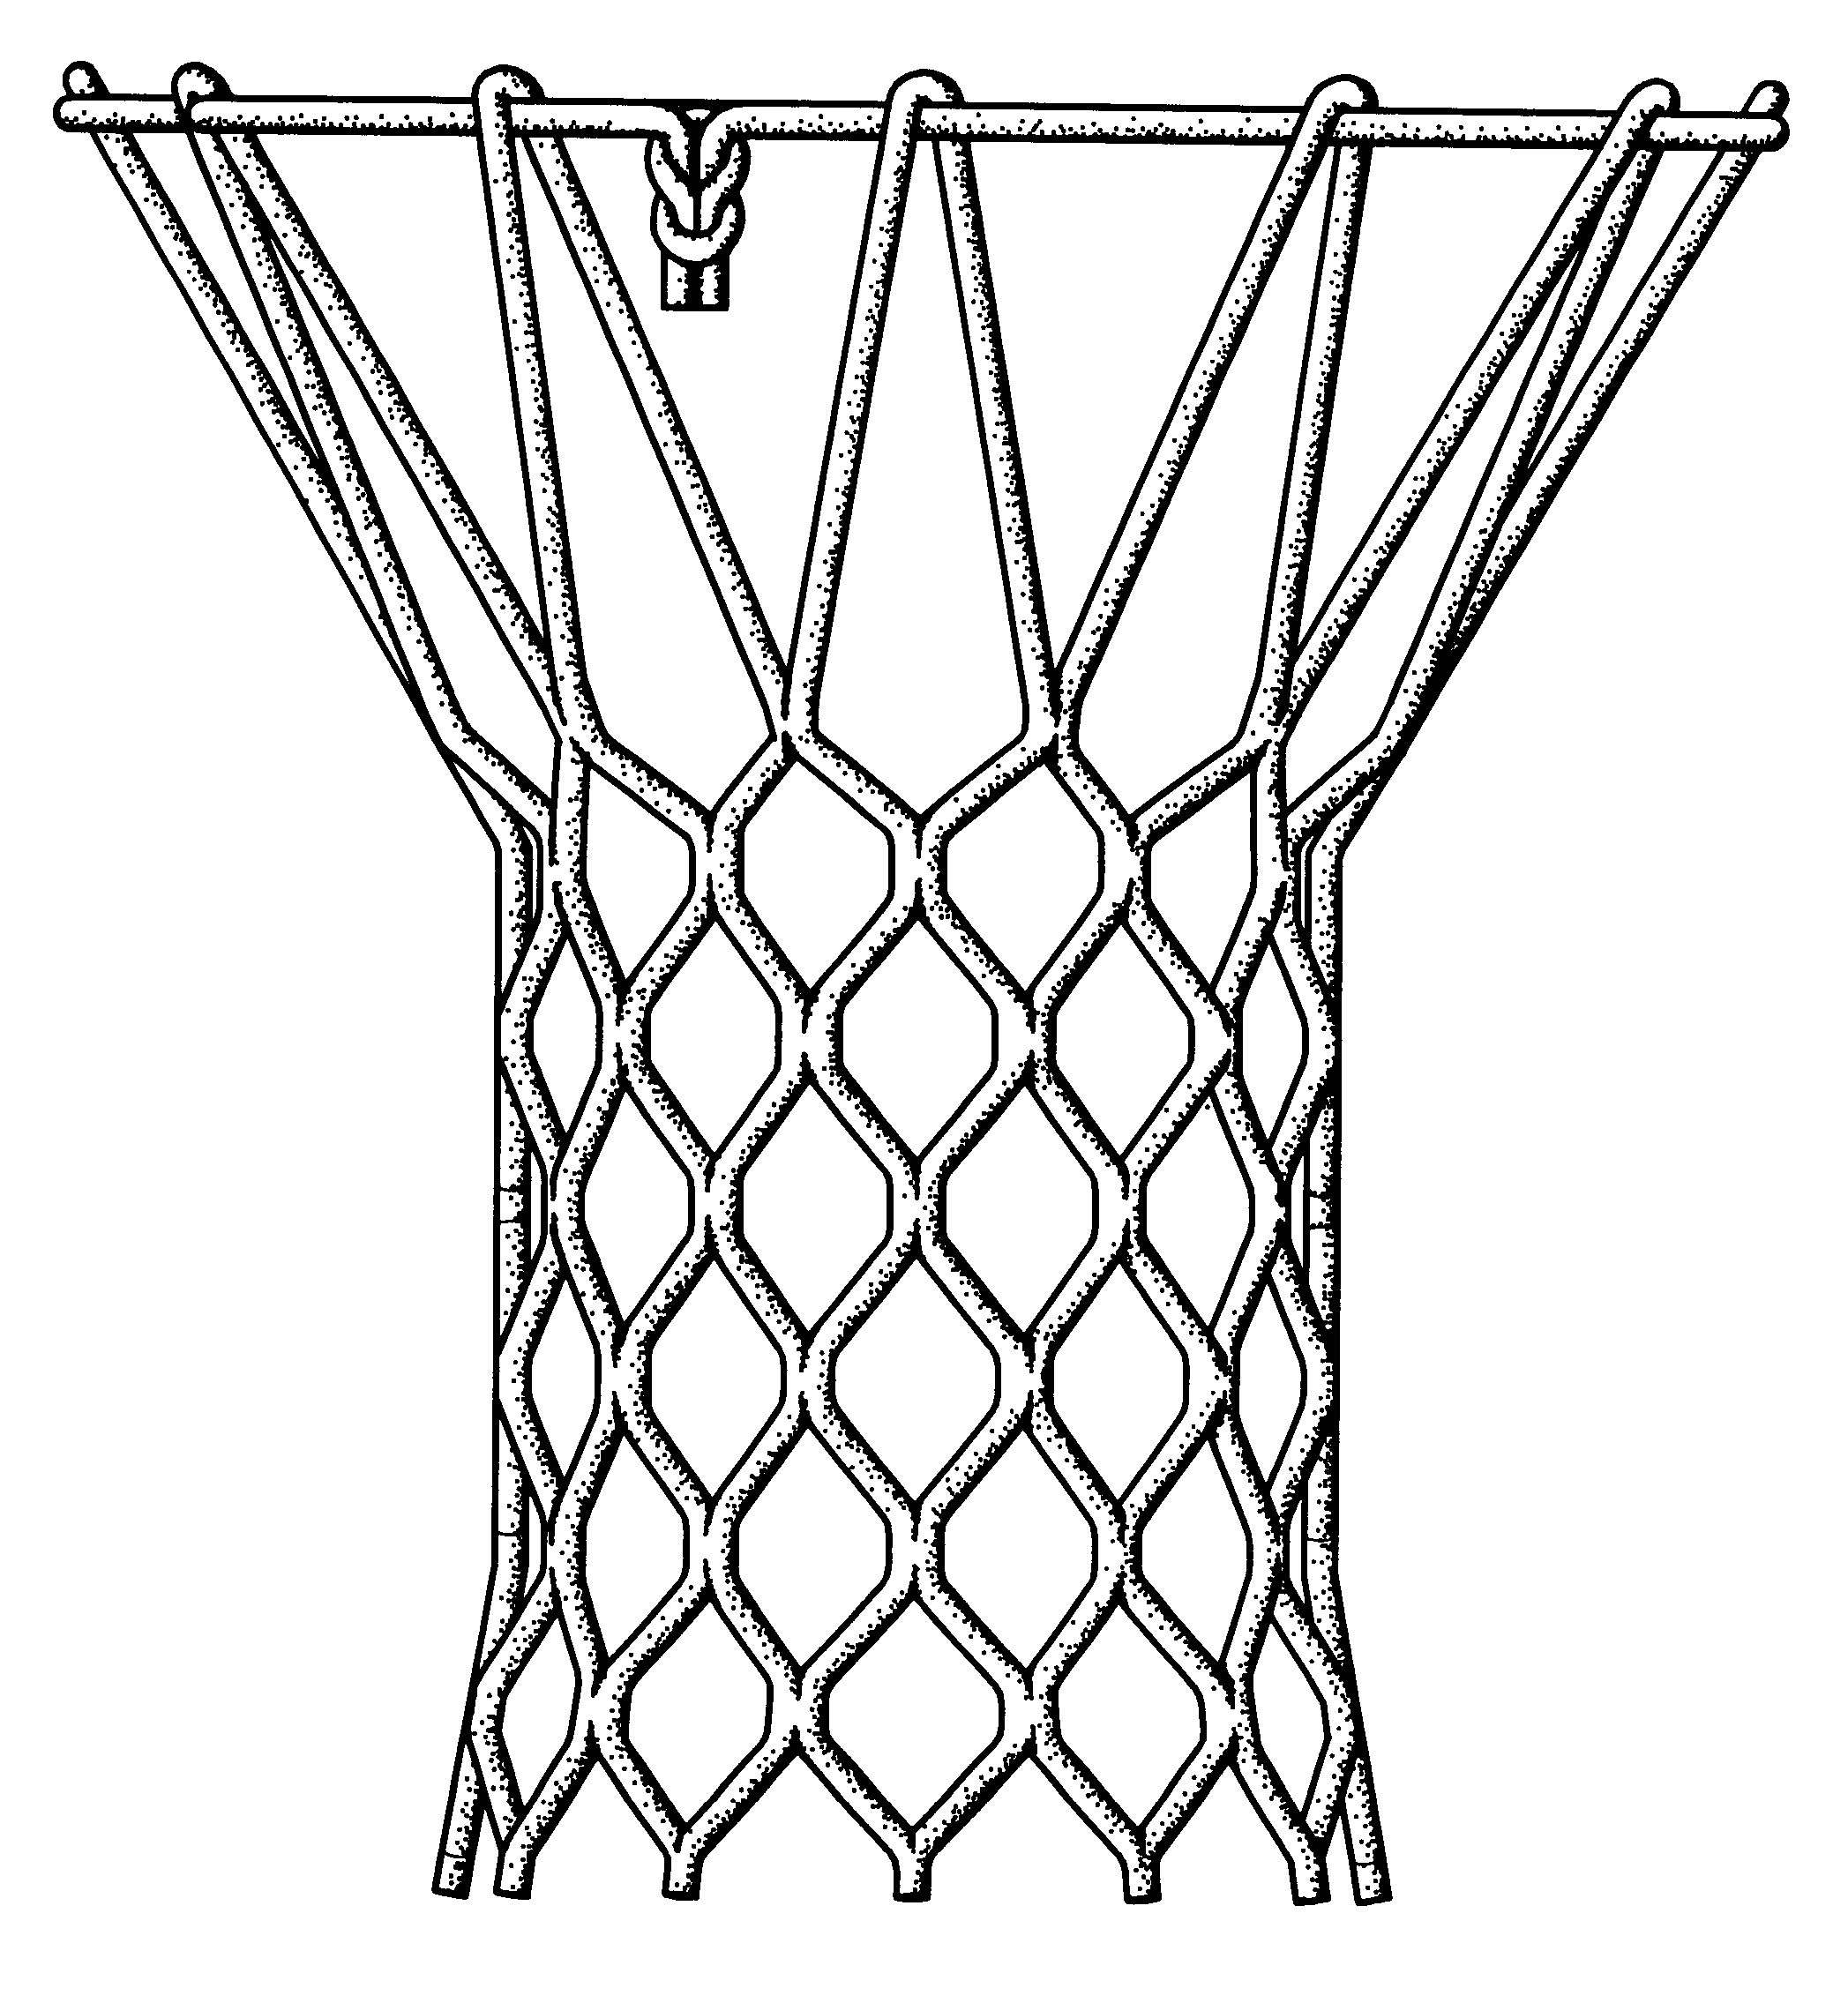 16 Free Vector Basketball Net Images